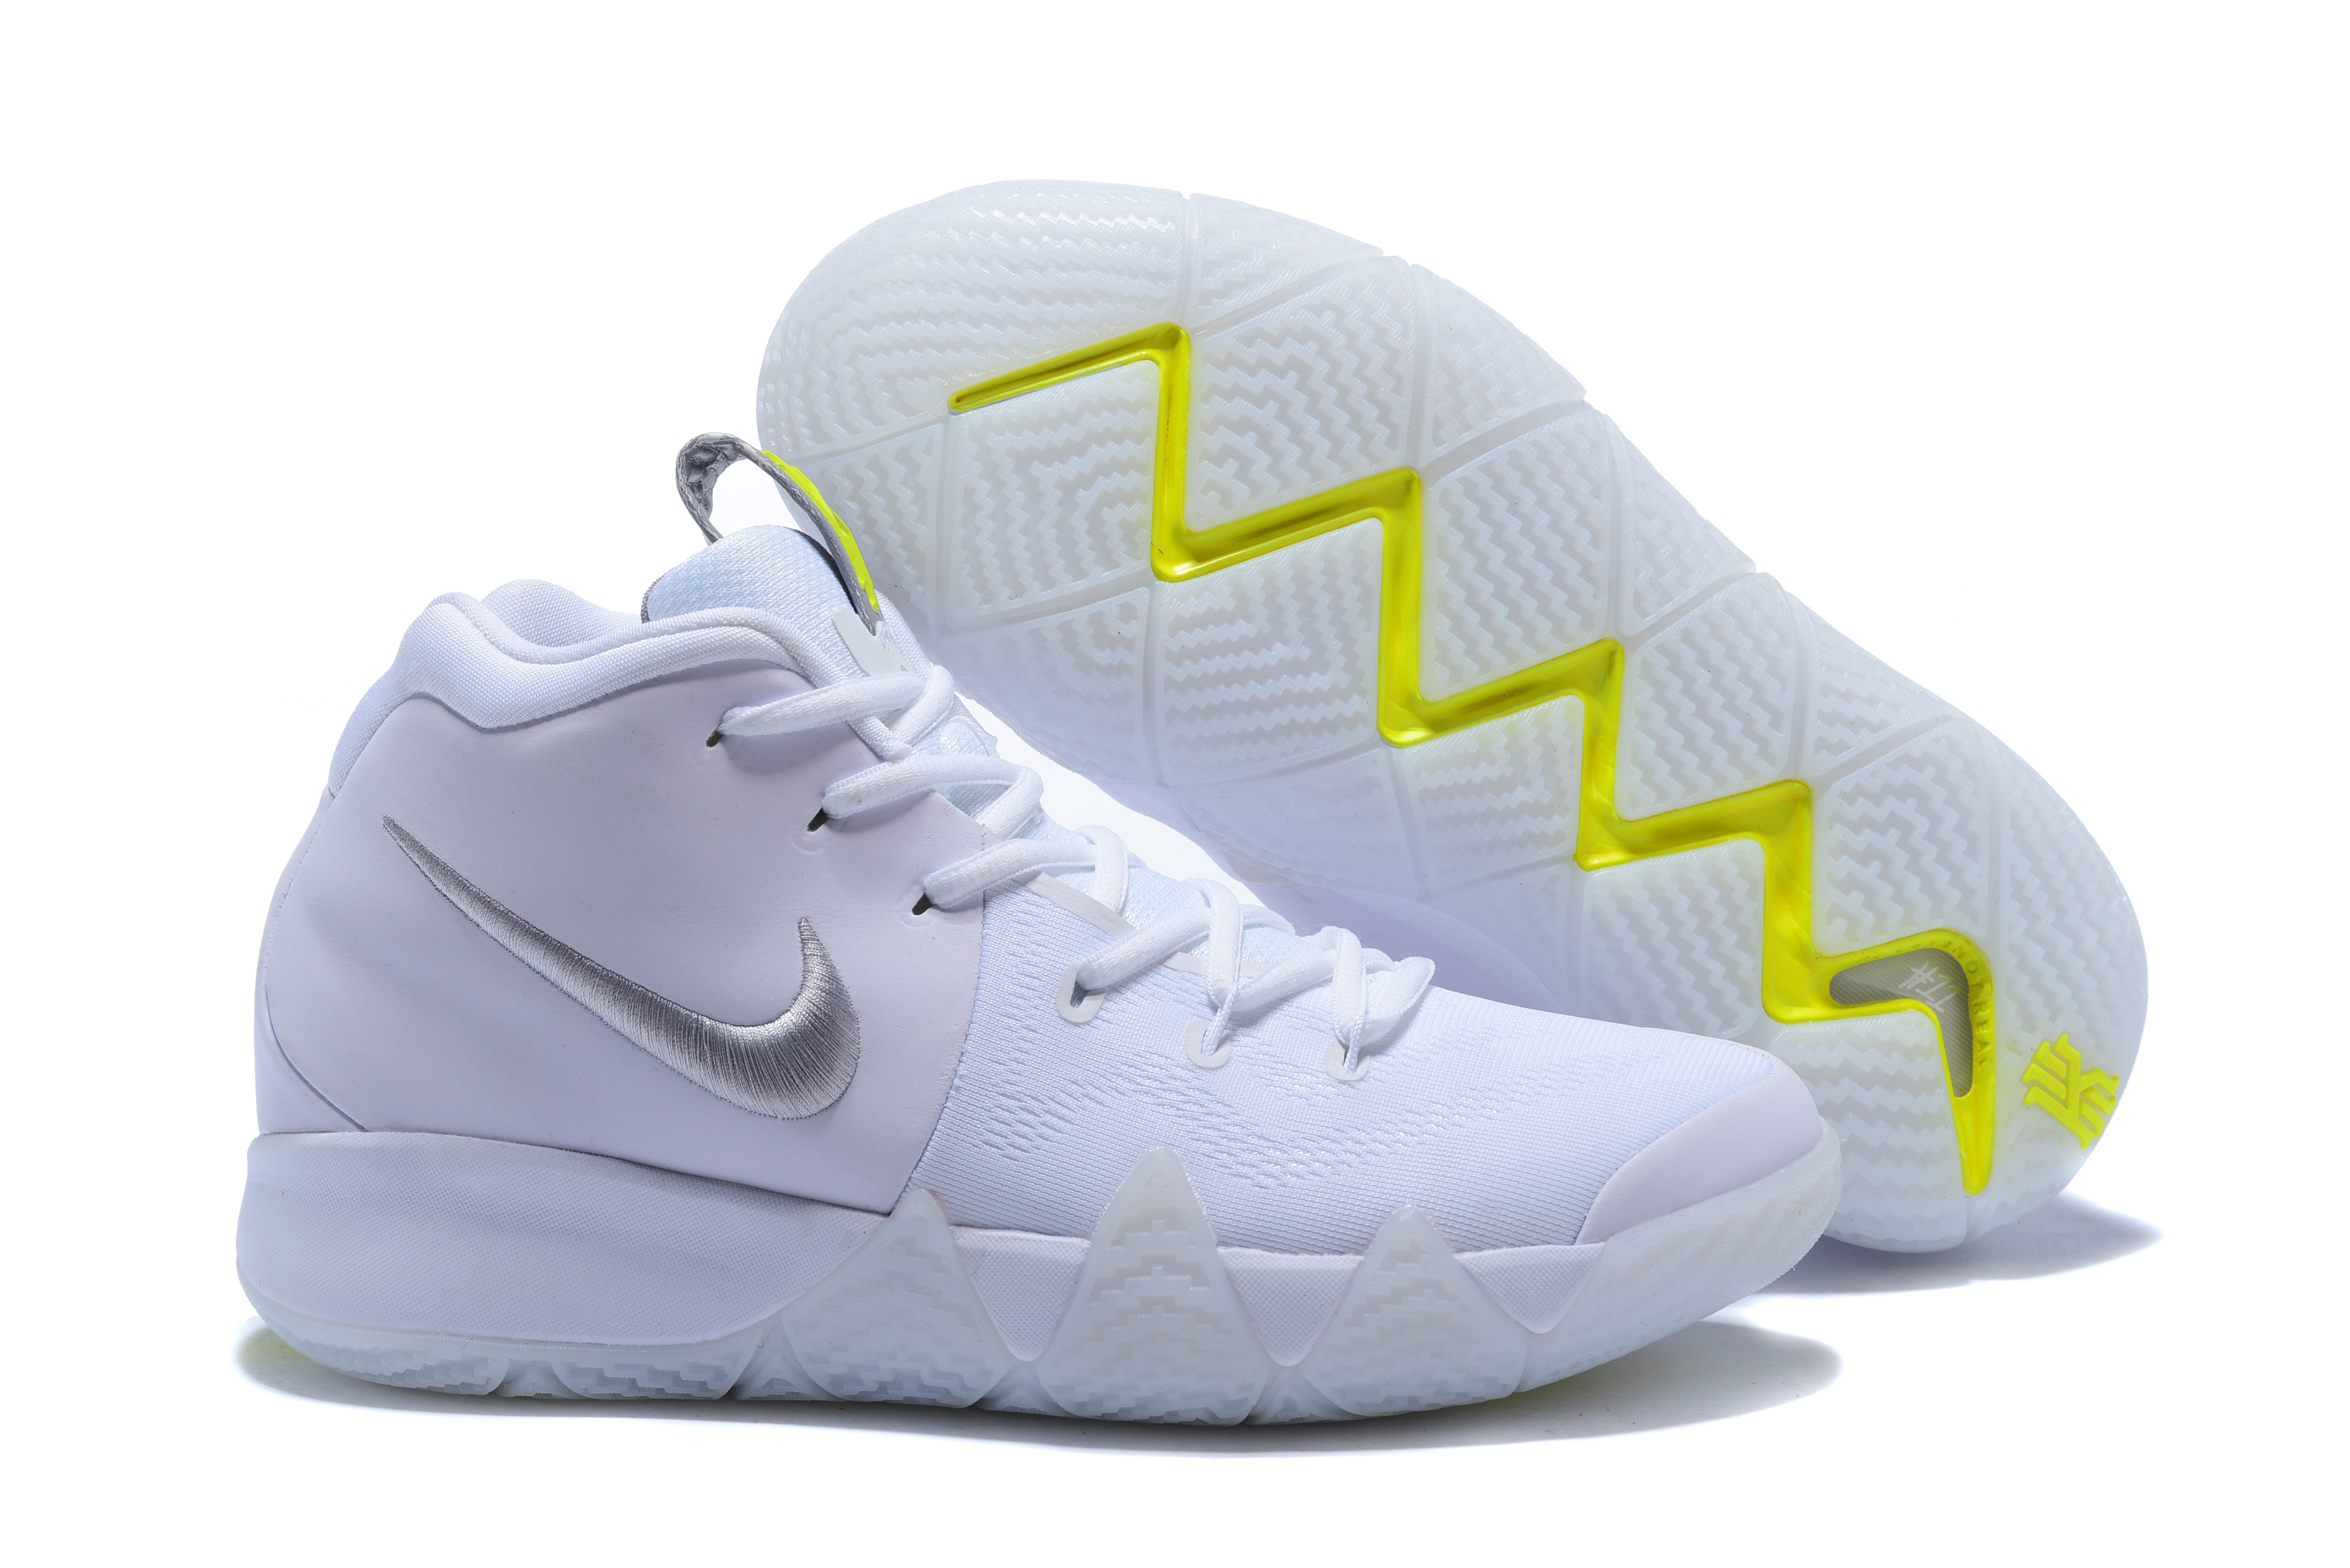 2018 Kyrie 4 White Sliver Shoes For Sale